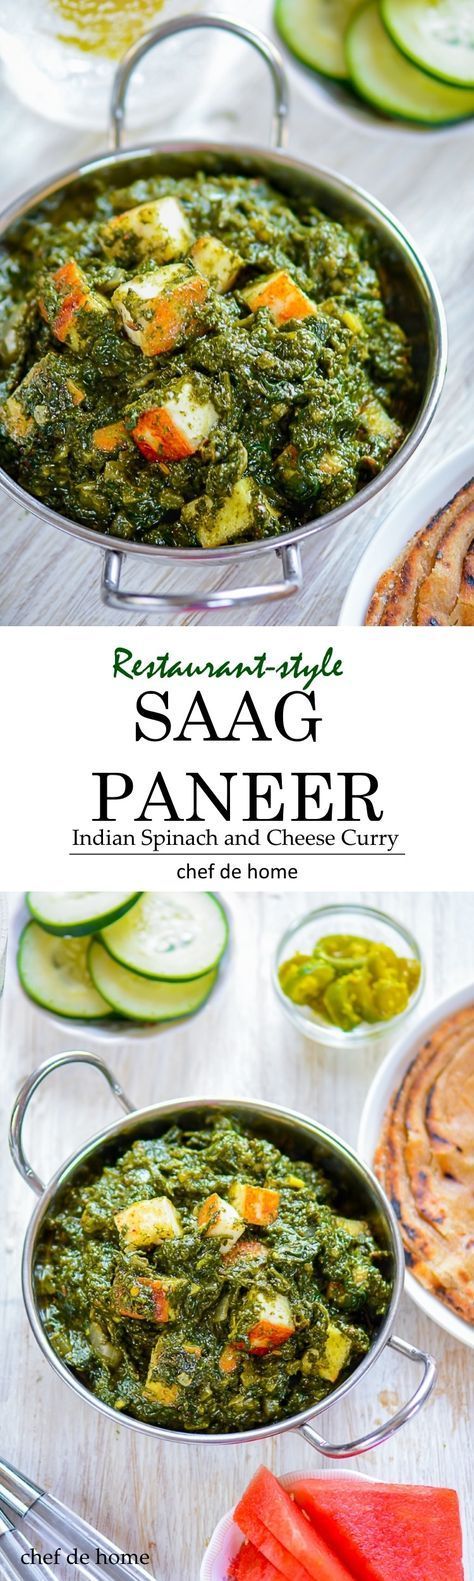 Palak Paneer Indian Creamed Spinach and Fried Paneer Curry | chefdehome.com